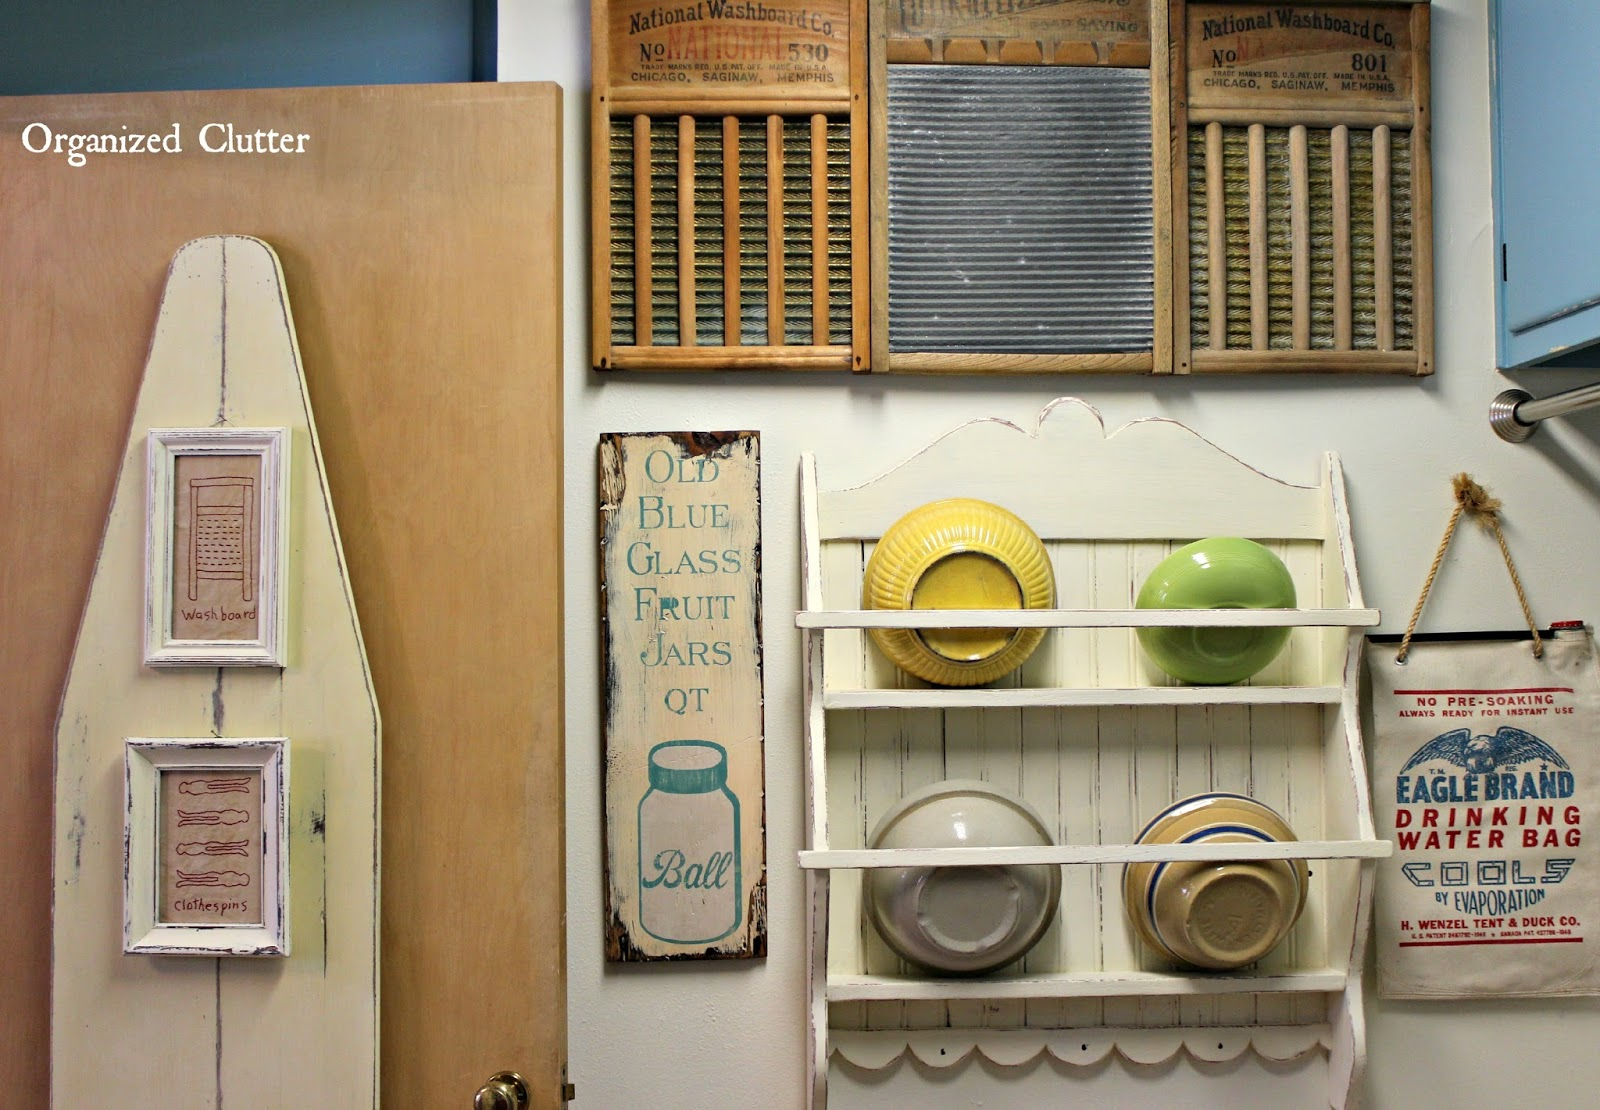 Farmhouse Vintage Laundry Room Decor www.organizedclutterqueen.blogspot.com